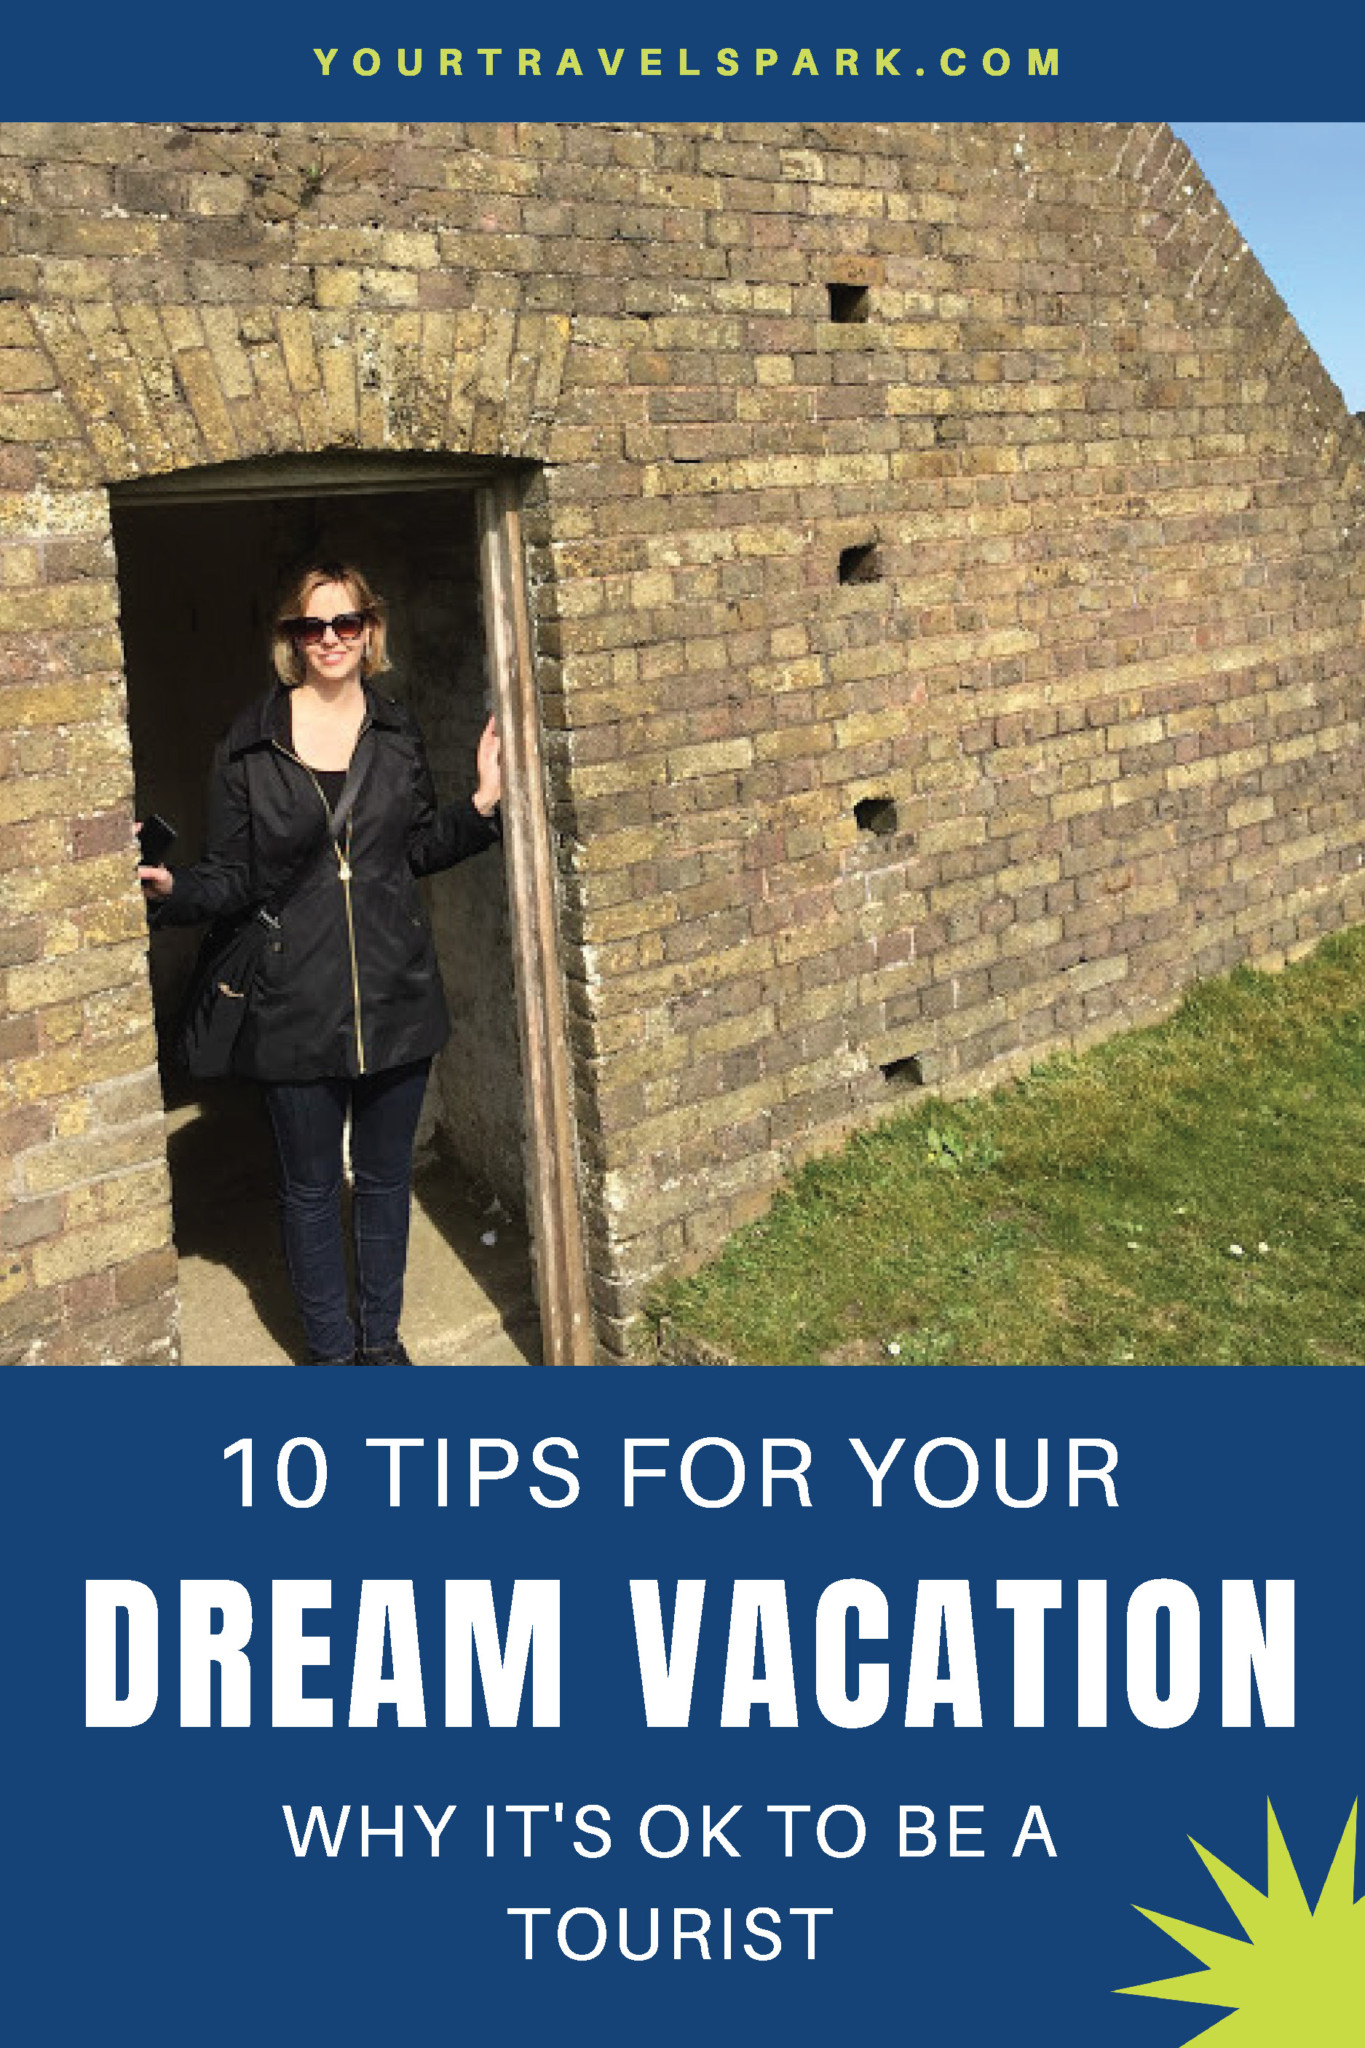 Your dream vacation is possible, but there are some things you should know first. Here are our top tips for enjoying your dream vacation. #dreamvacation #vacation #dreamtrip #traveltips #vacationtips #travel